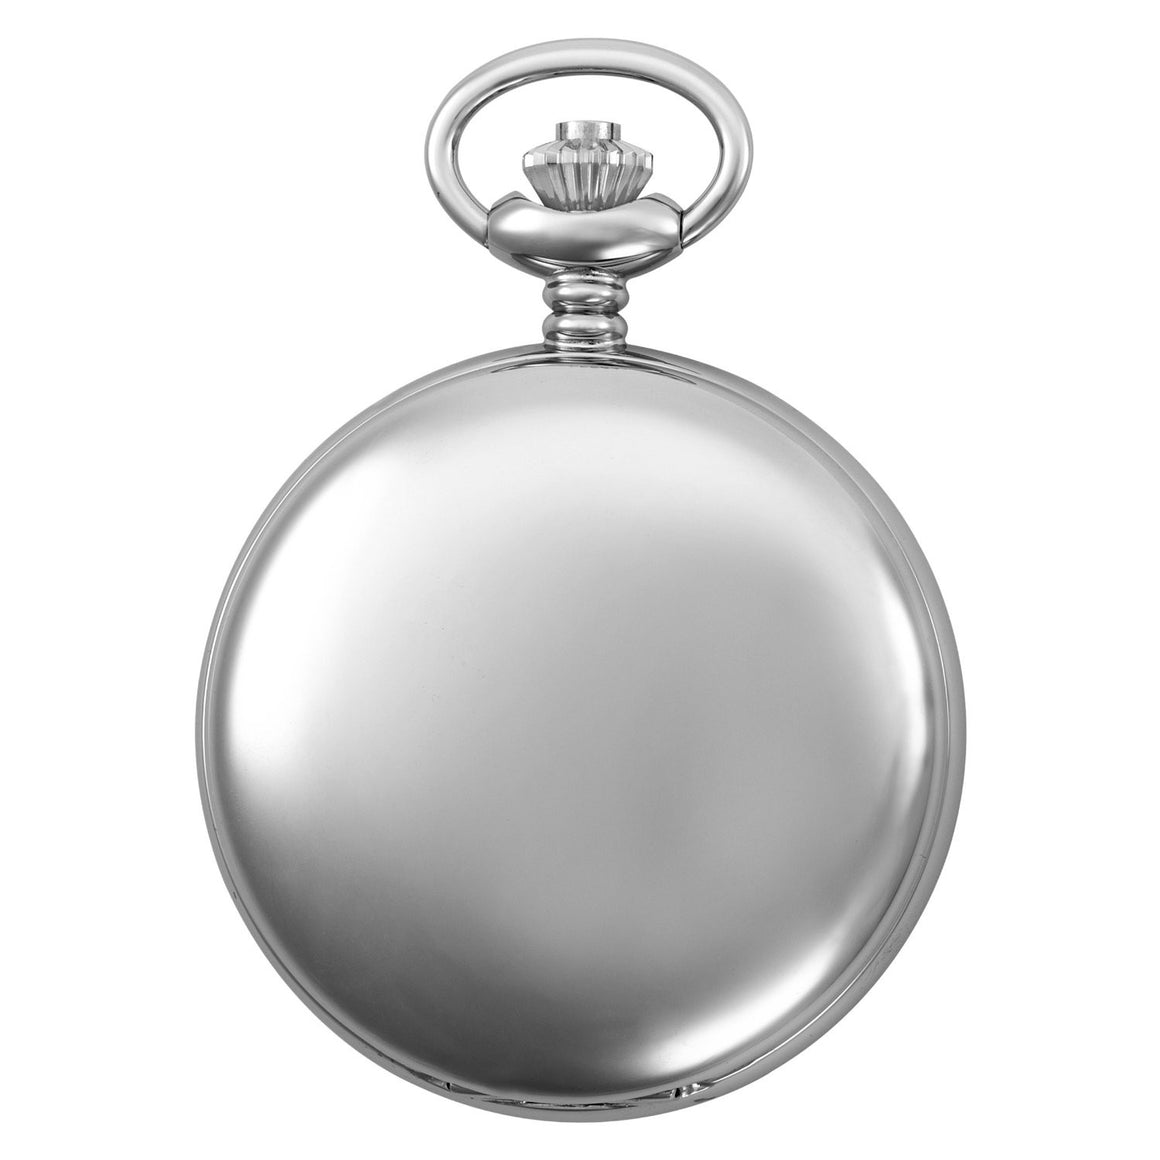 Gotham Men's Silver-Tone Blue Dial Covered Quartz Pocket Watch # GWC15042SBL - Gotham Watch